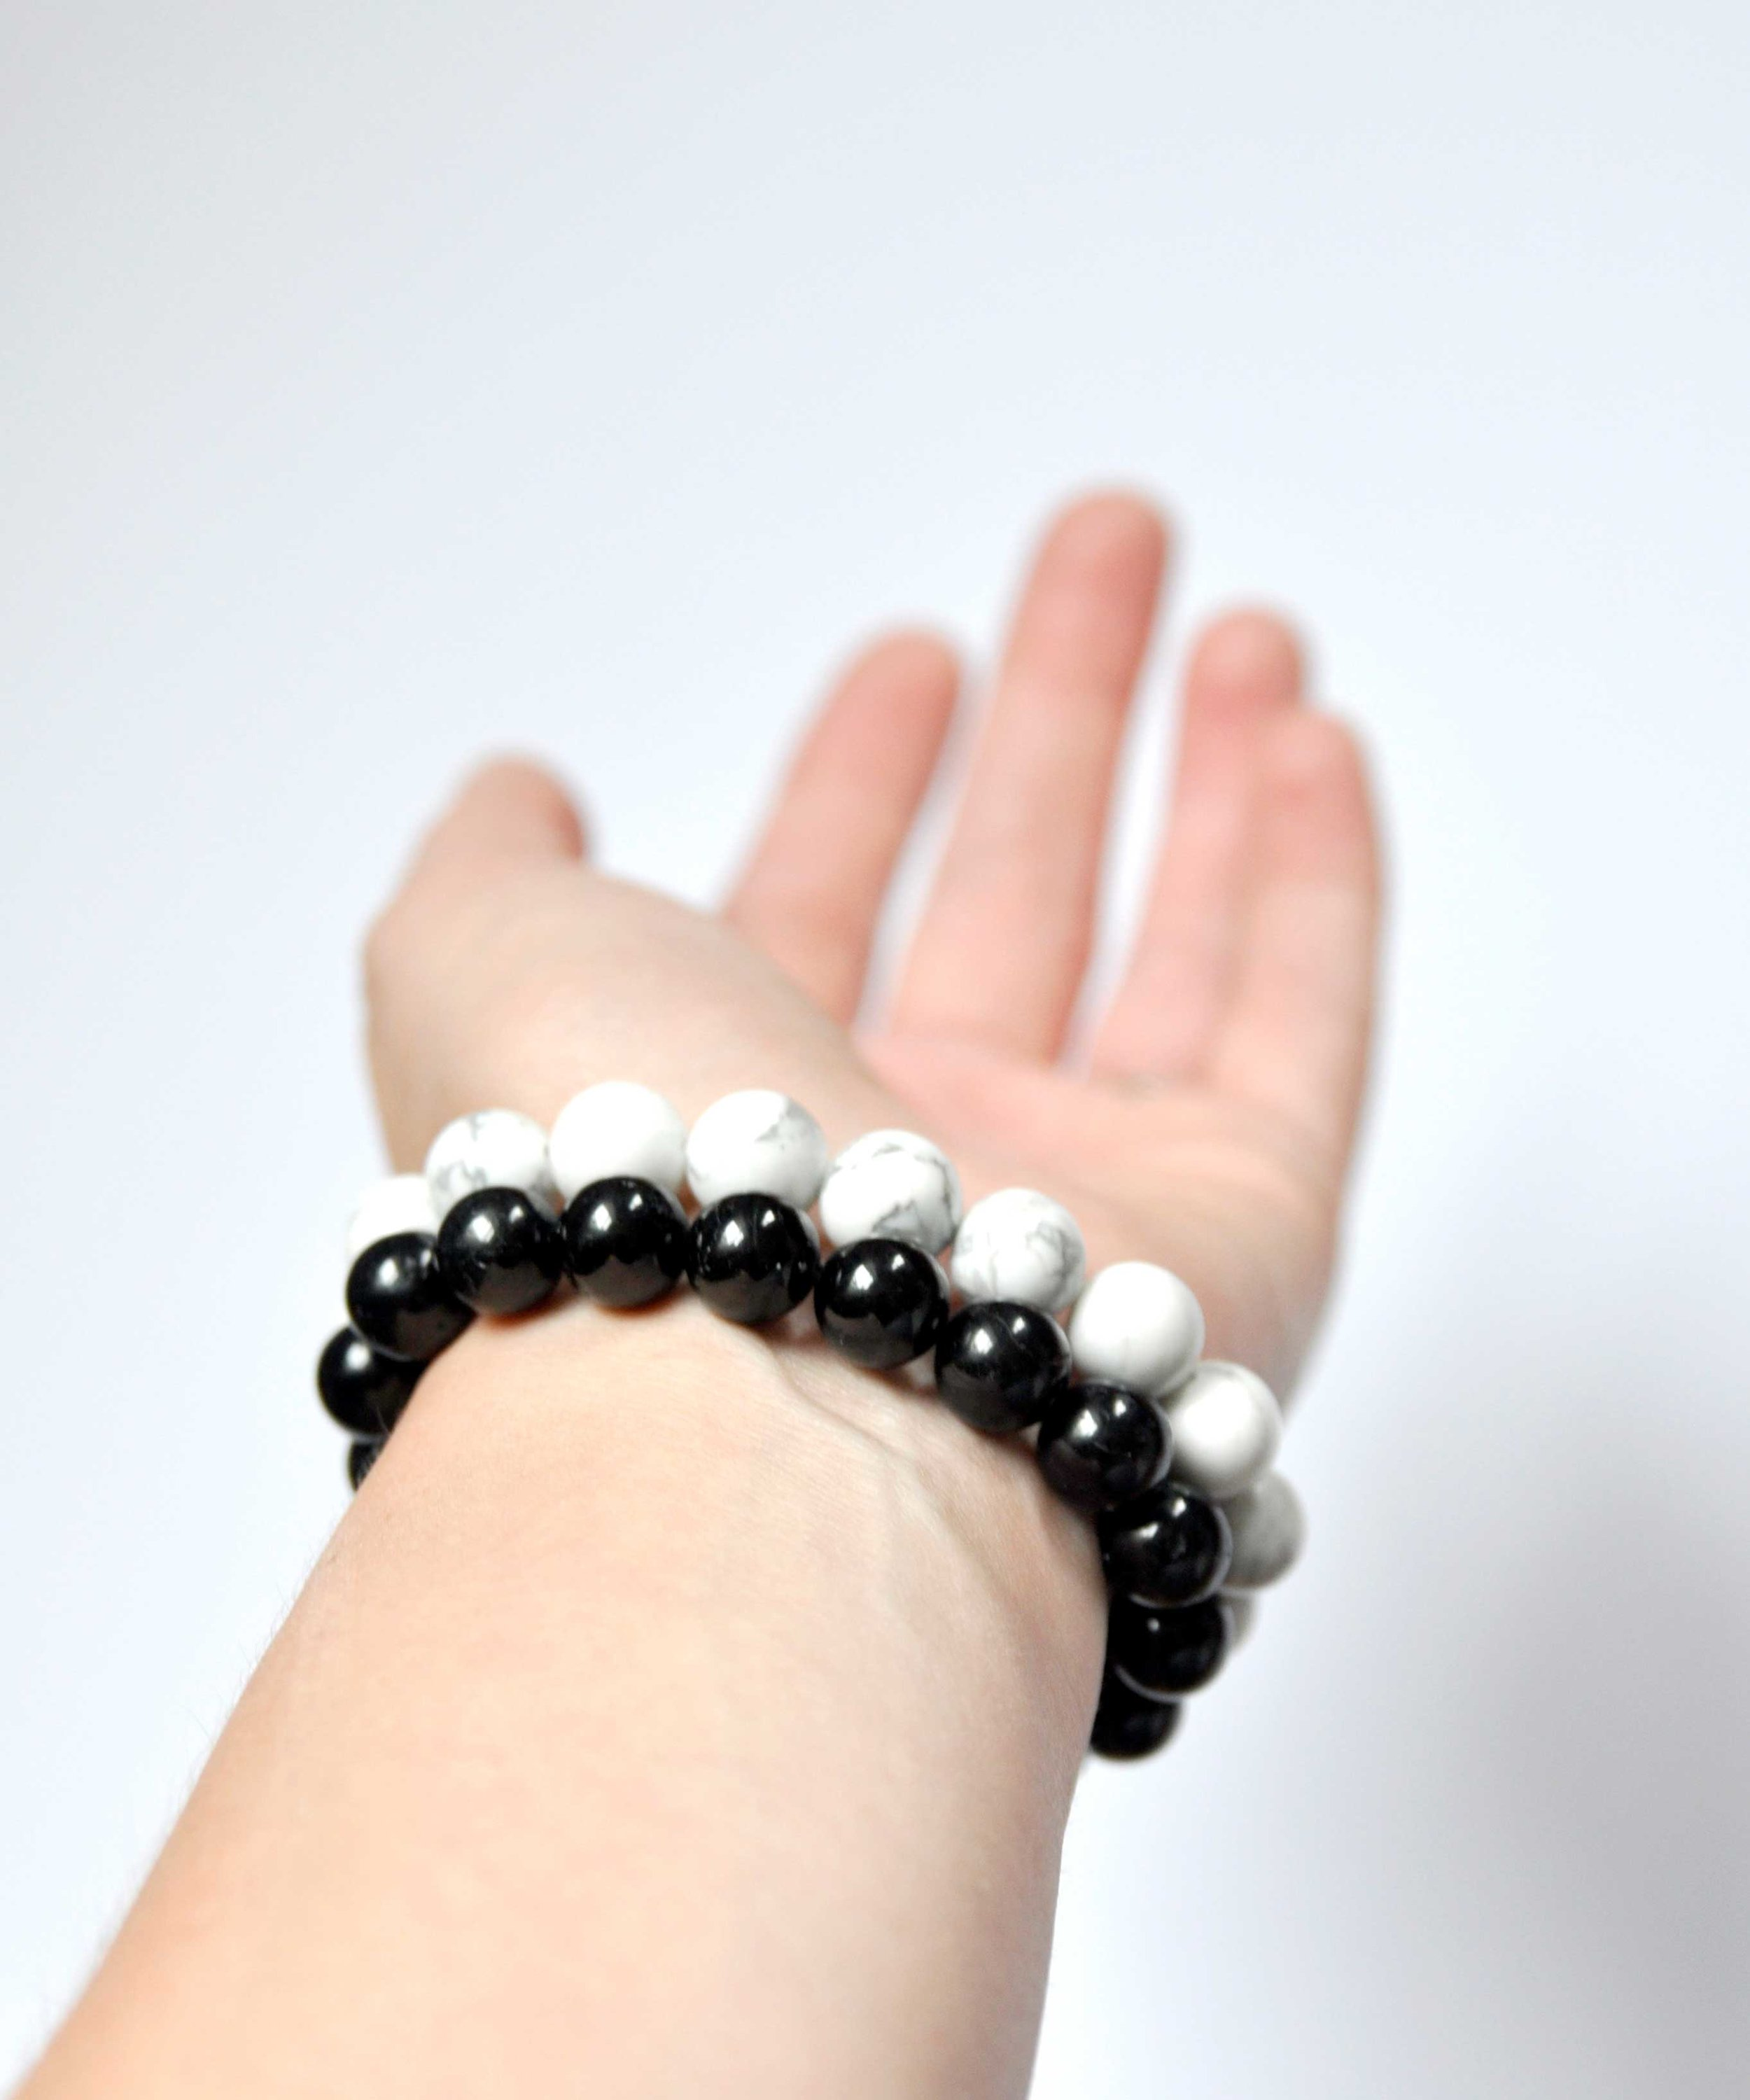 Healing crystal bracelets by Swell Made Co. x Breathing Inspiration. With black tourmaline and howlite stones.